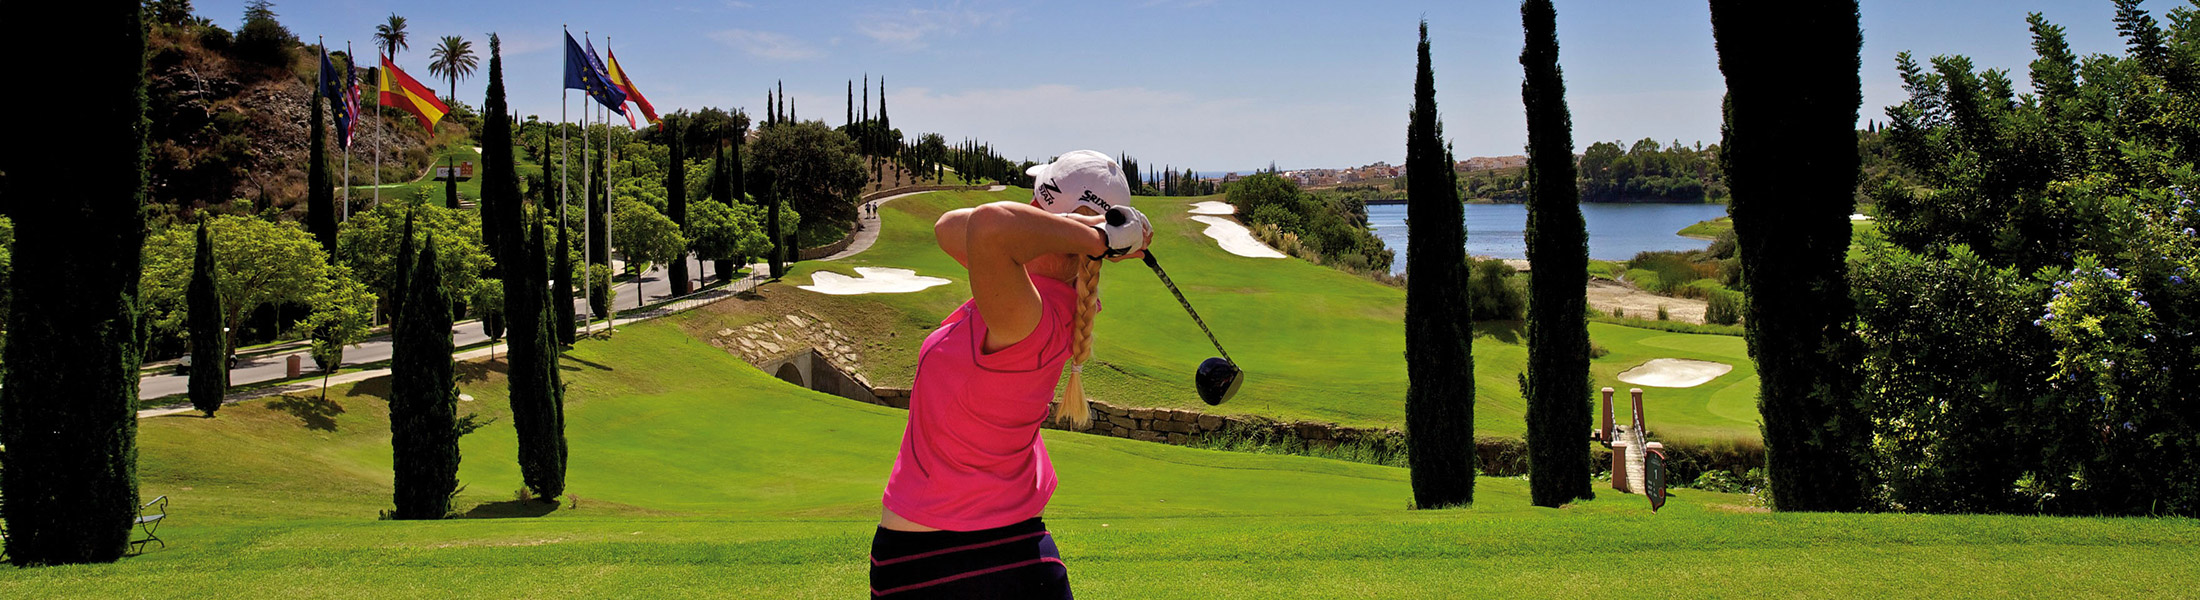 Gaston Golf Tours SL for quality golf holidays in Spain and Portugal